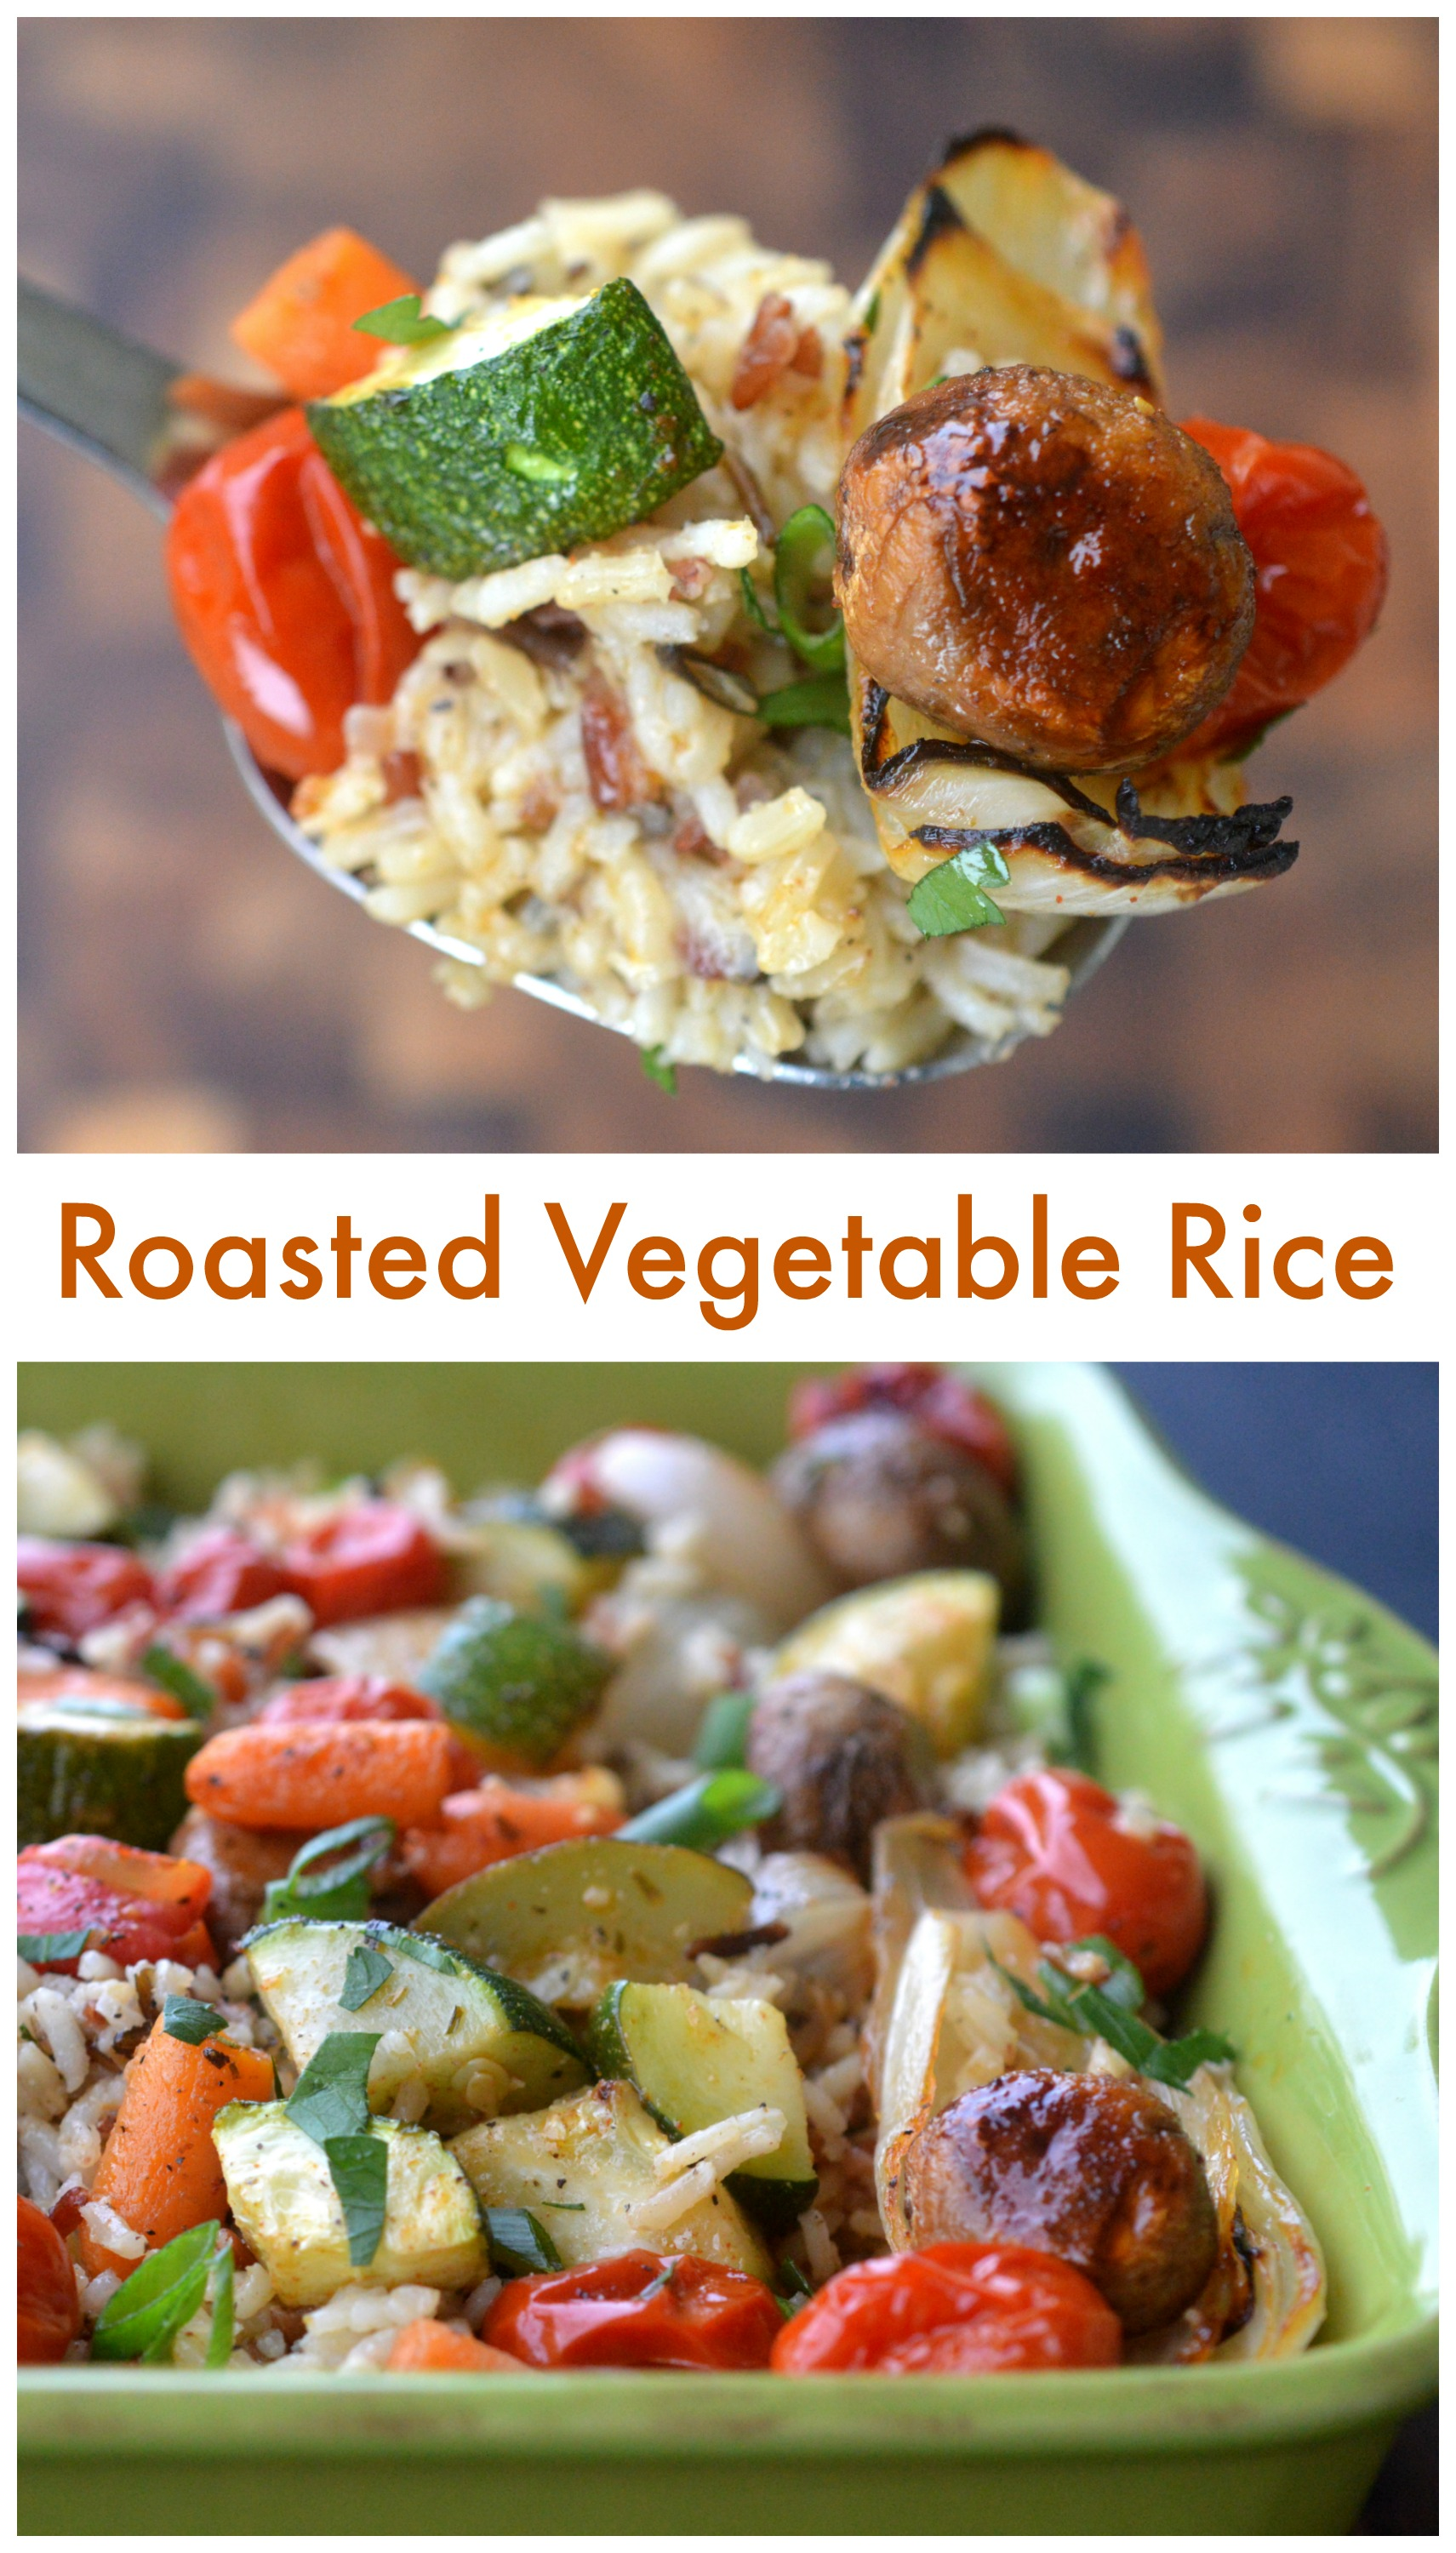 Roasted Vegetable Rice Recipe, perfect as a side or as a meatless main dish